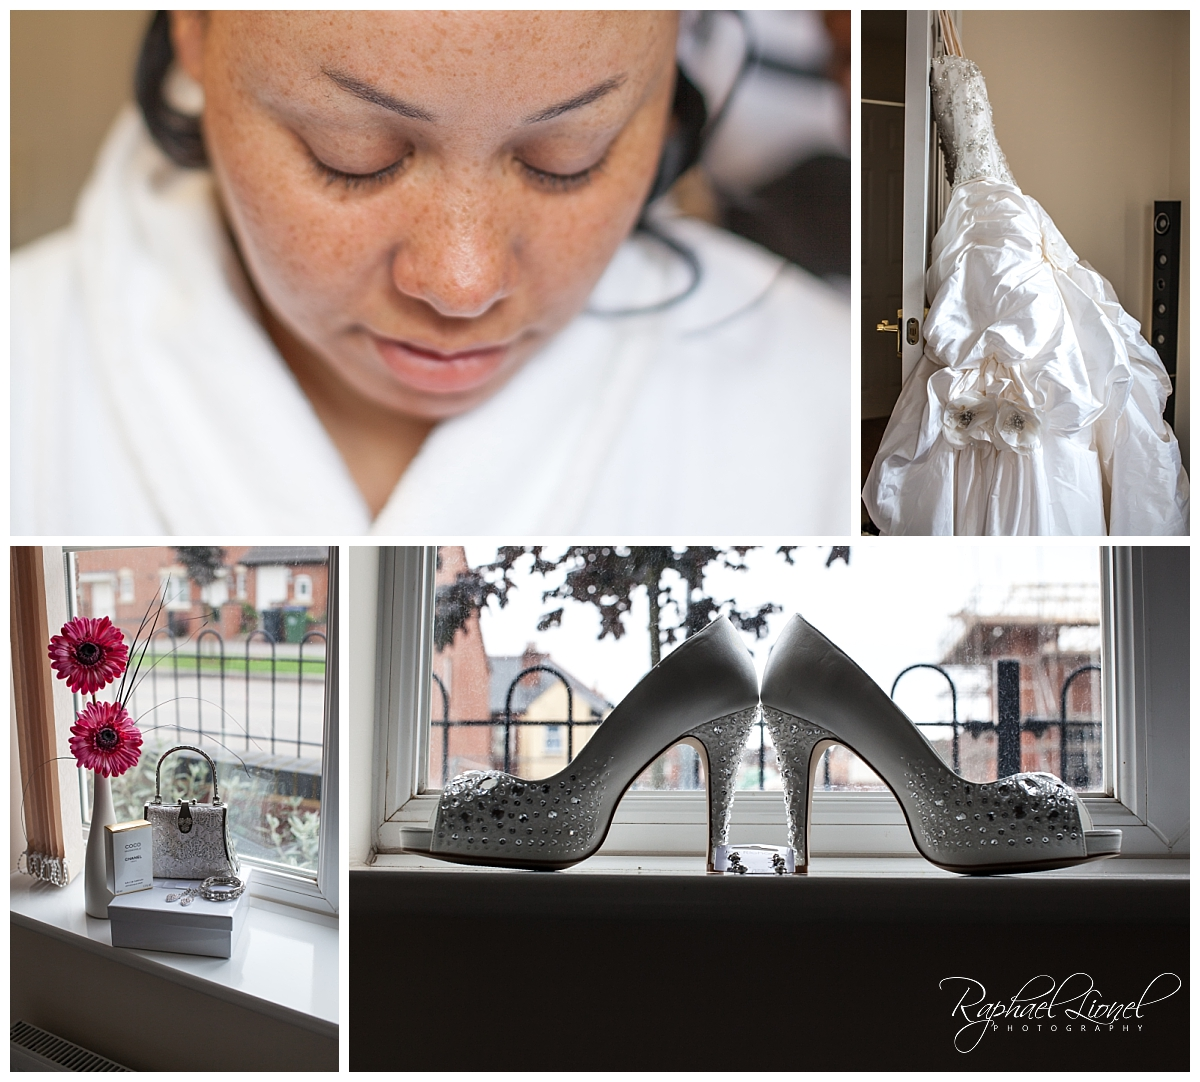 2018 04 08 0001 - City Wedding Birmingham | Dauntley and Simone